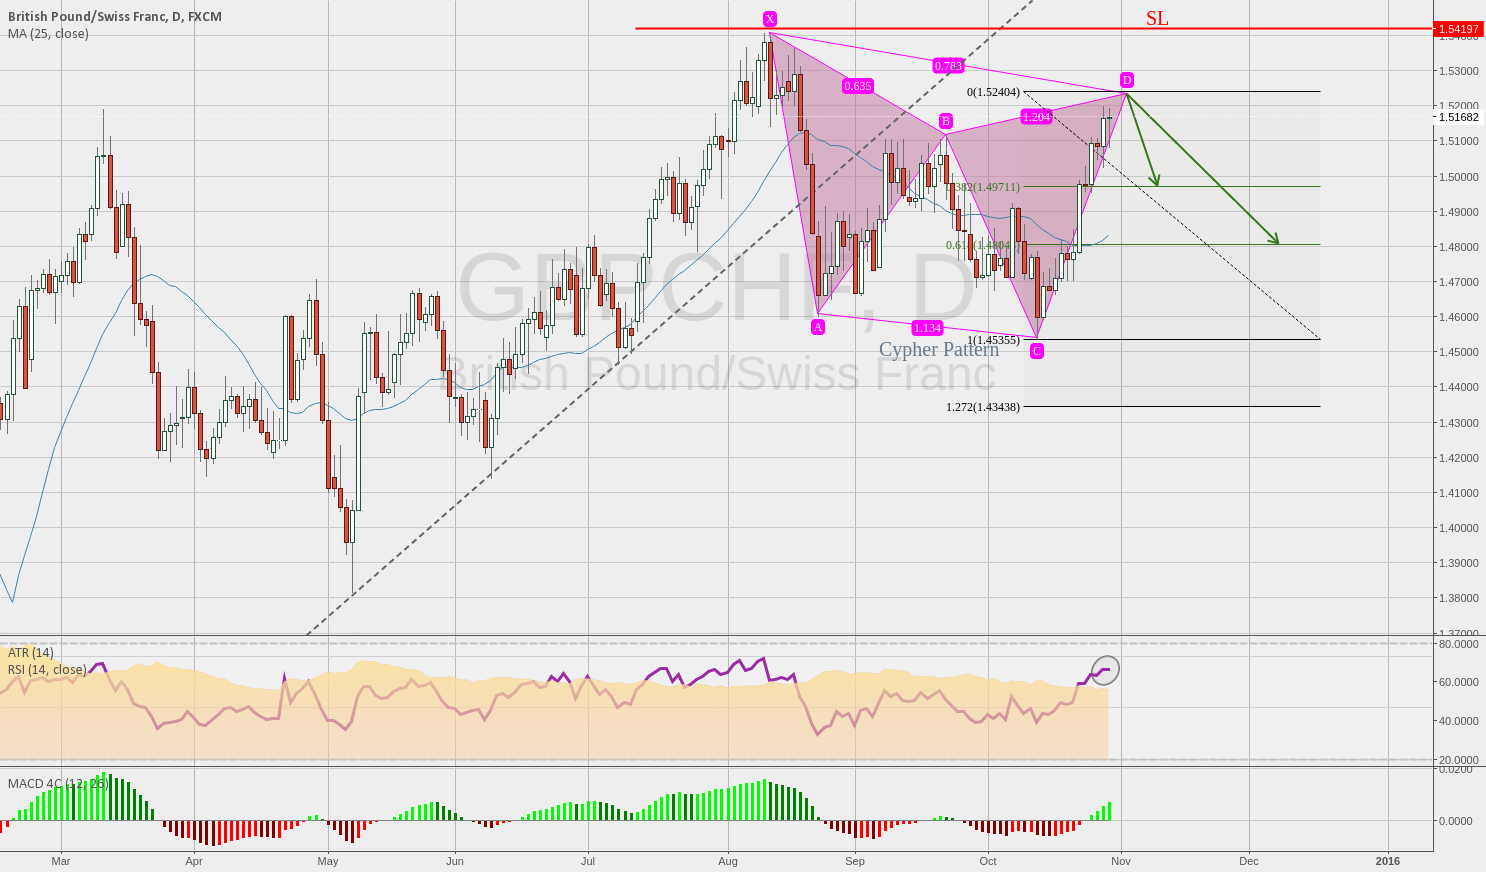 GBPCHF Cypher Bearish Pattern